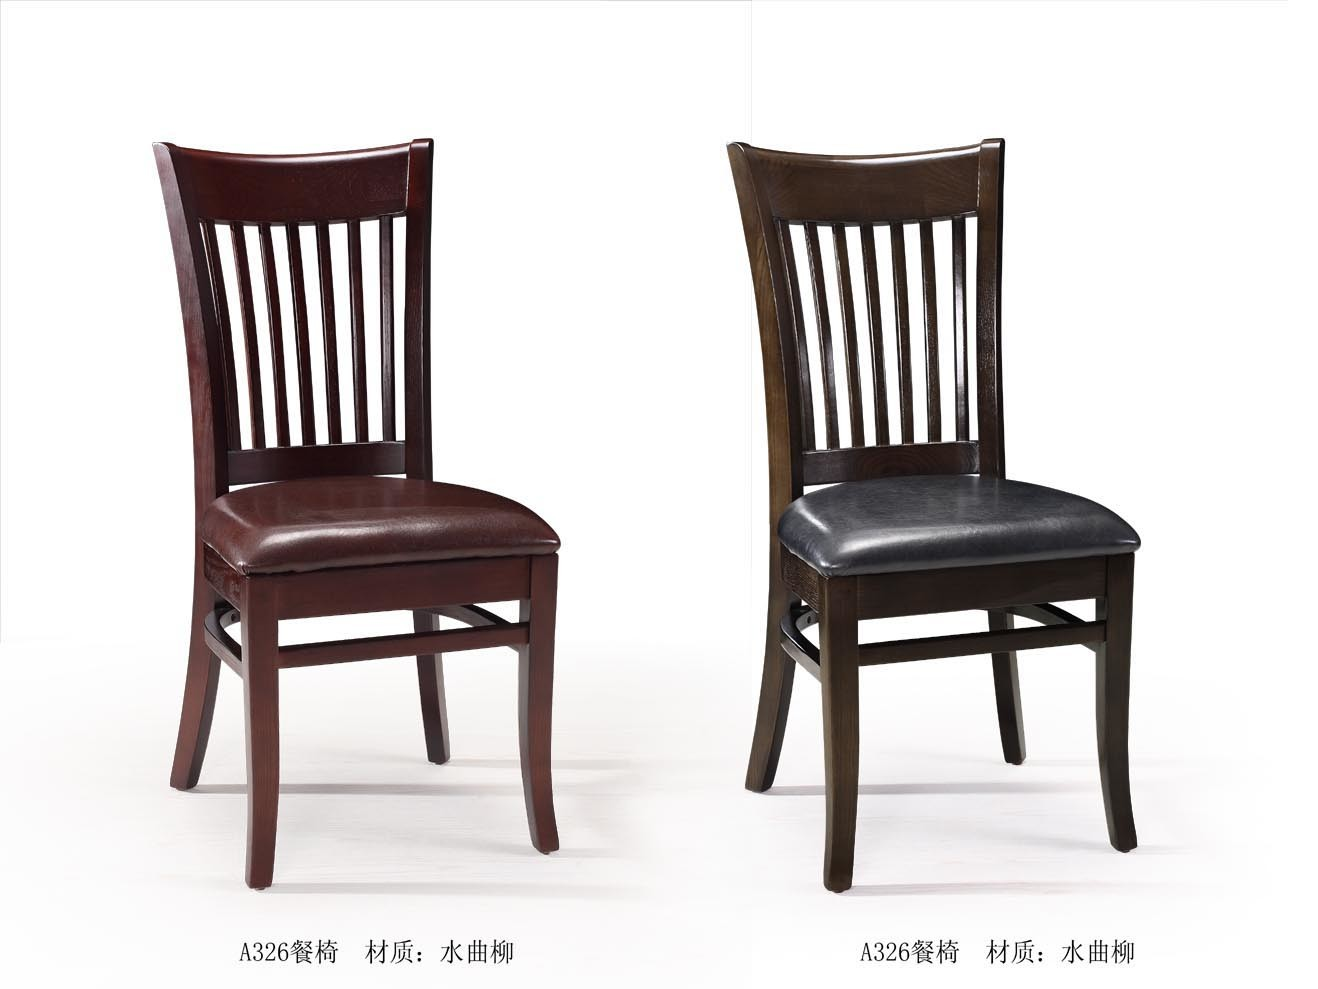 Modern wood chair with arms -  Select Solid Modern Wooden Dining Chairs For Your Beautiful Home